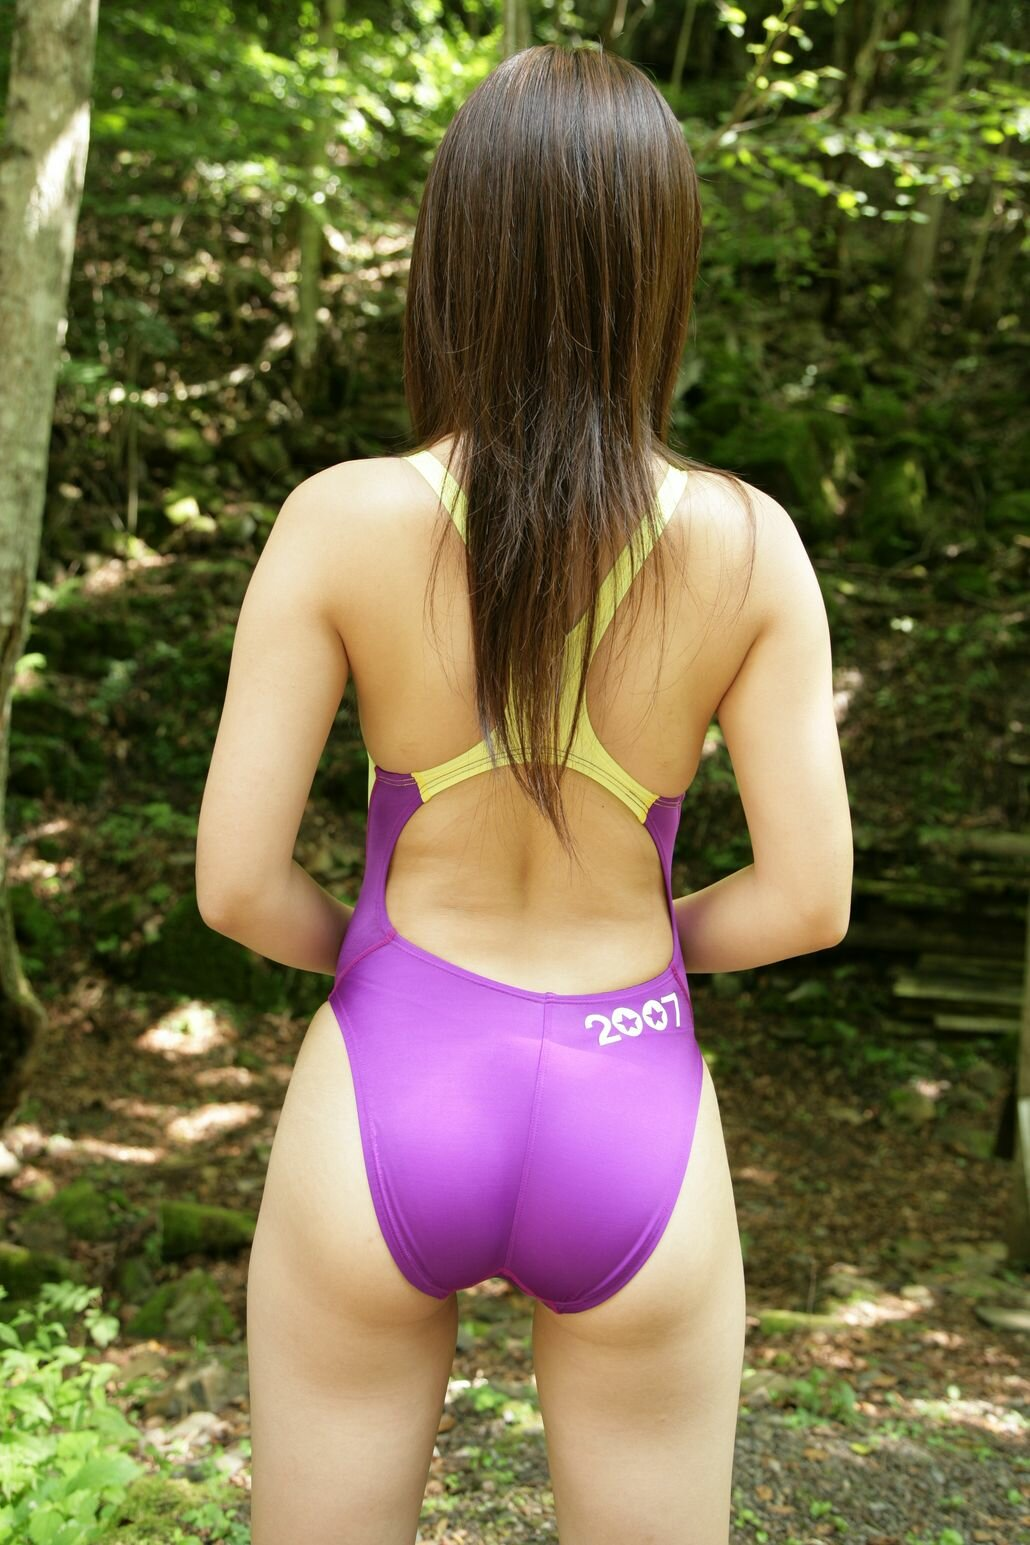 Teen girls butts in leotards 15